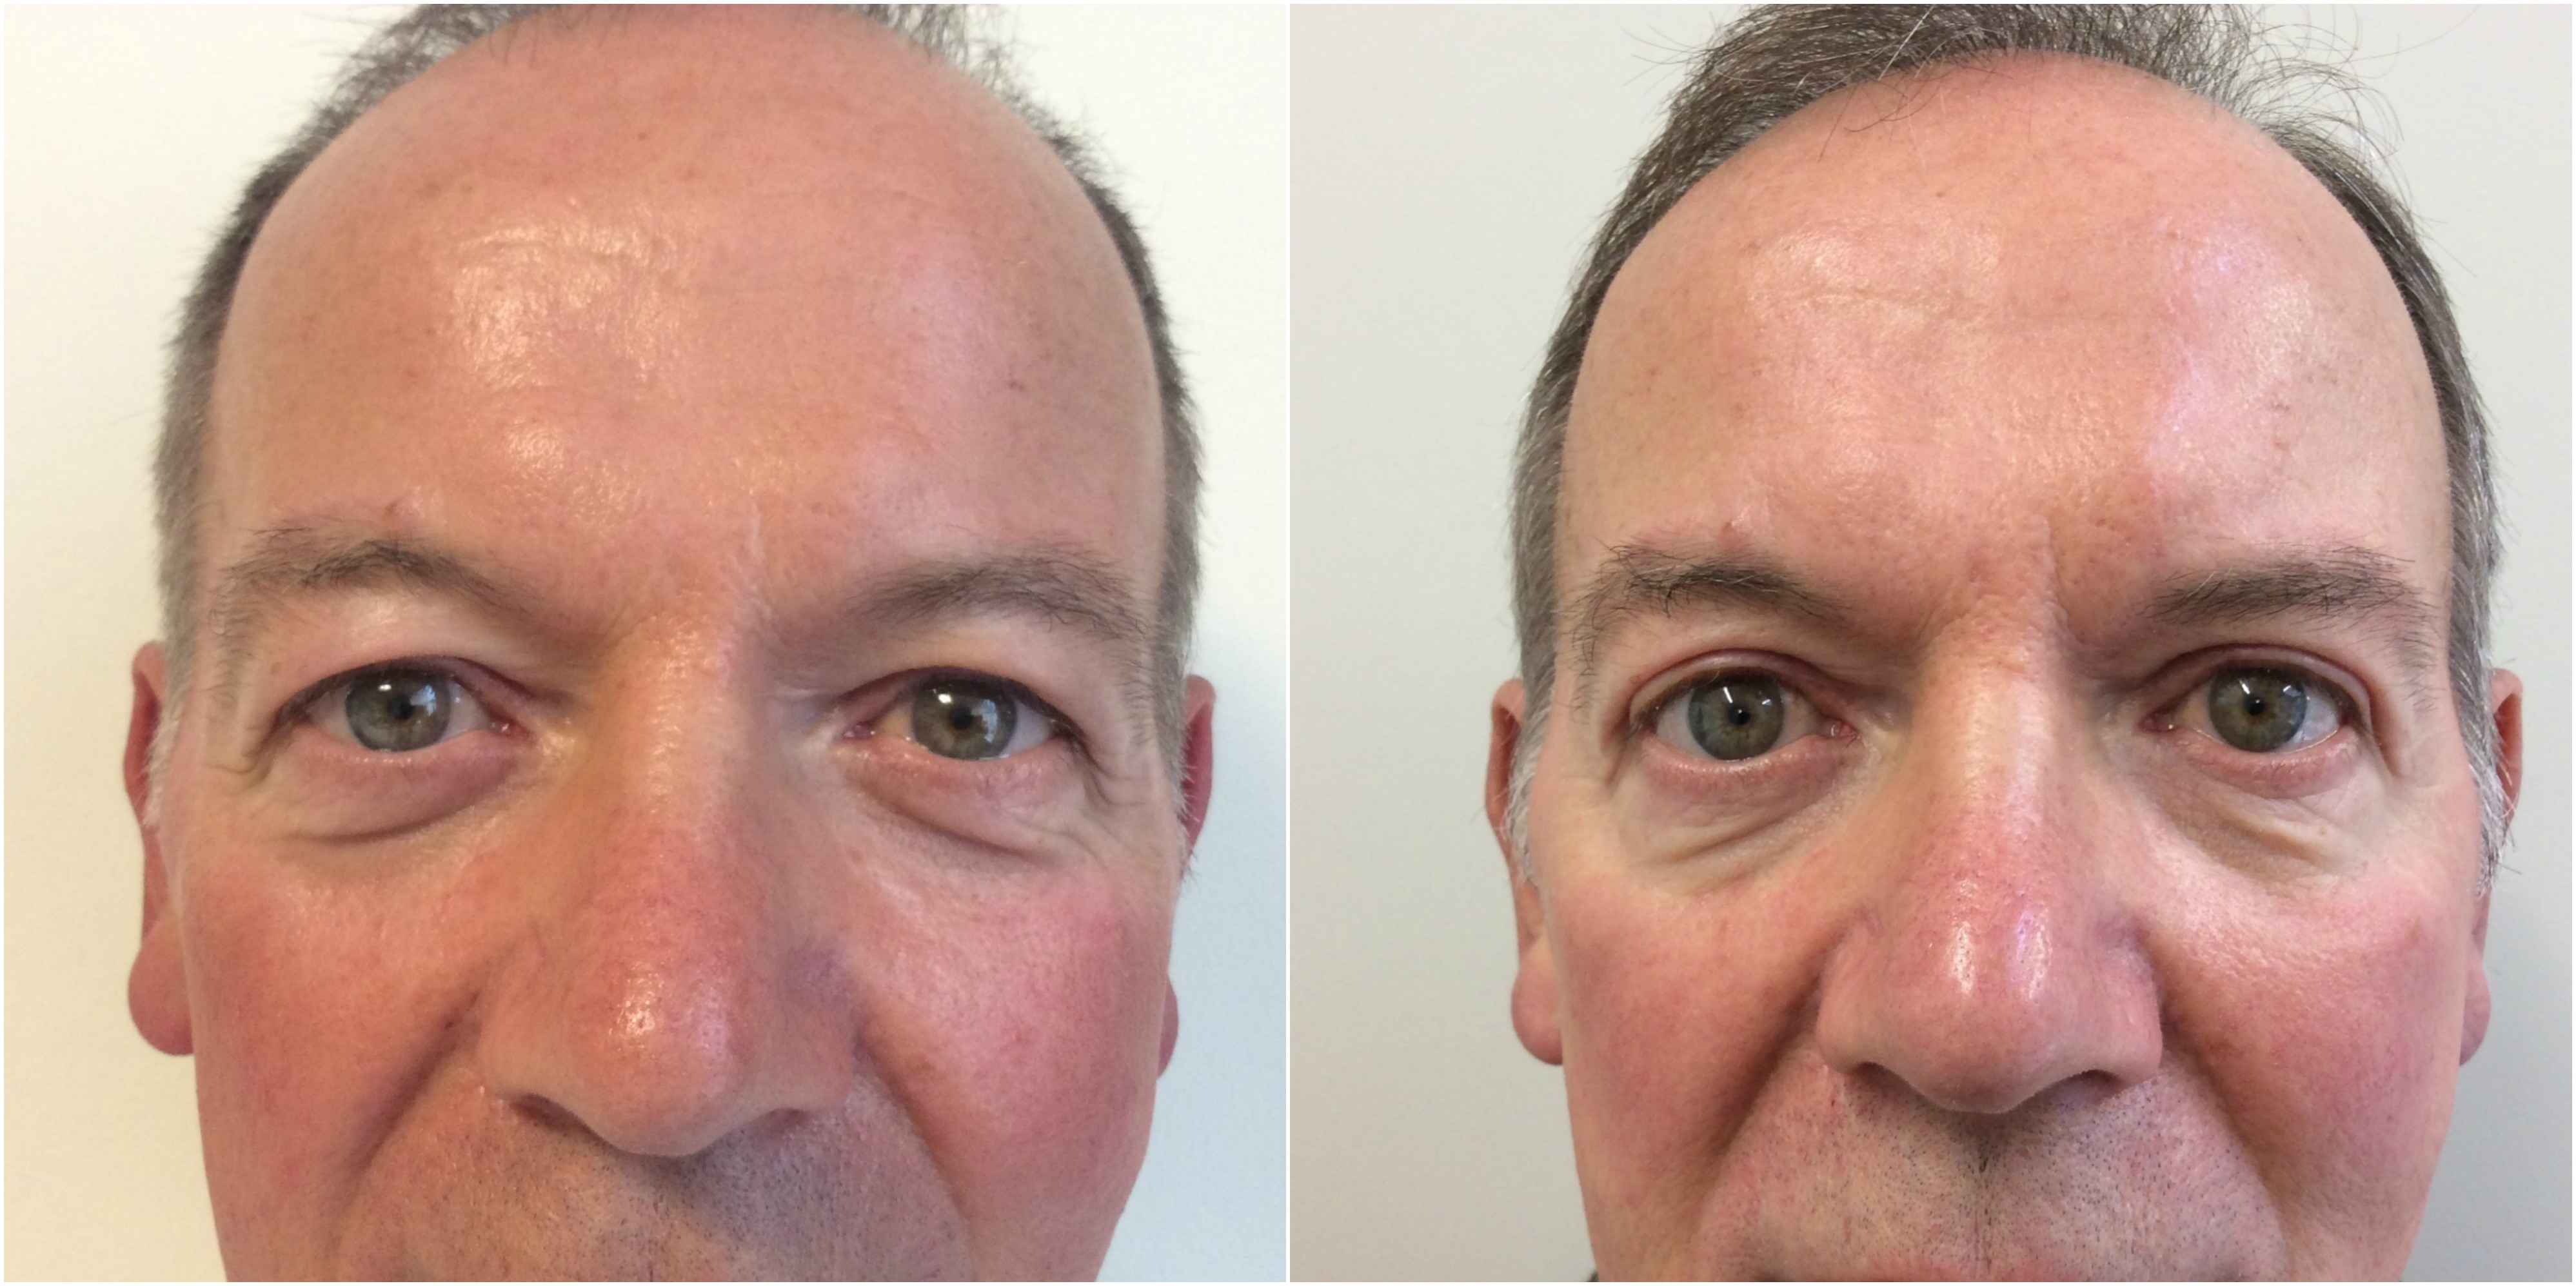 Before and after Upper Blepharoplasty with Dr Davood Fallahdar.